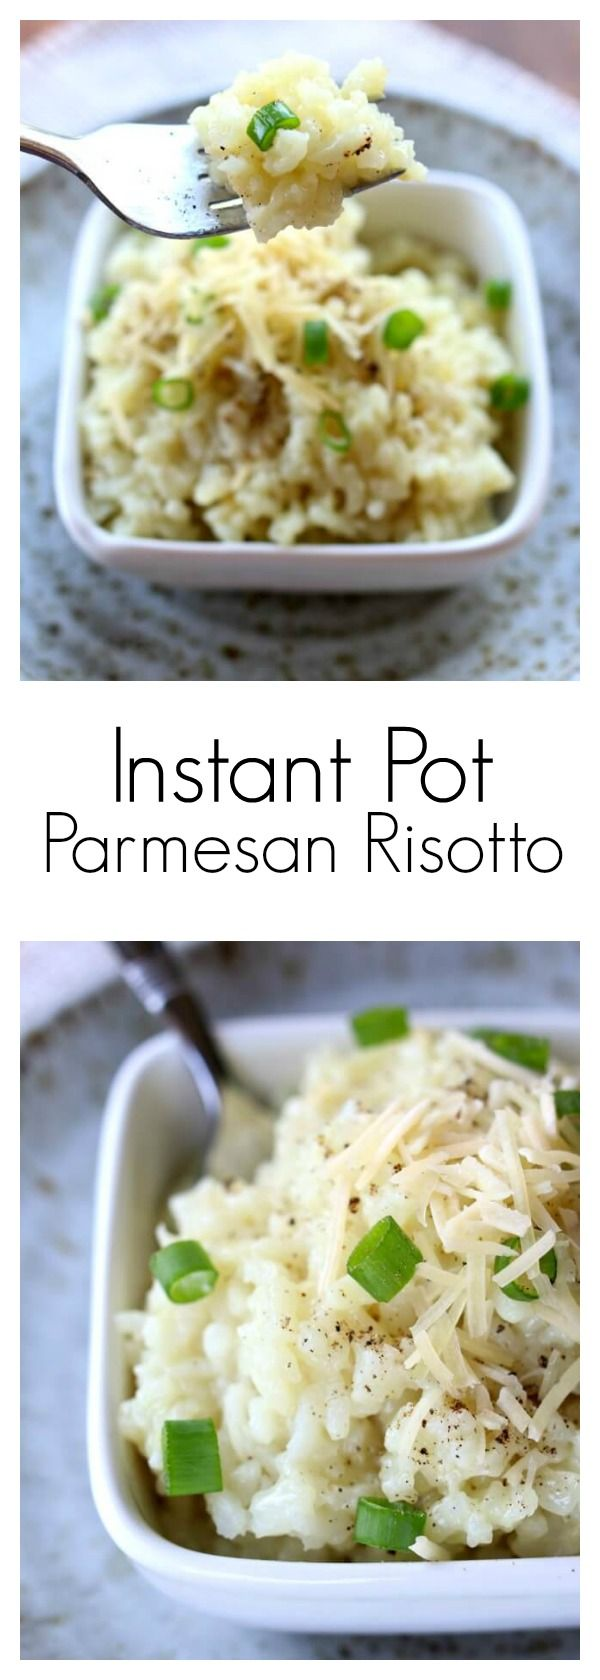 Instant Pot Parmesan Risotto–Creamy, no fuss and no stir risotto made in just a few minutes in your electric pressure cooker. #instantpot